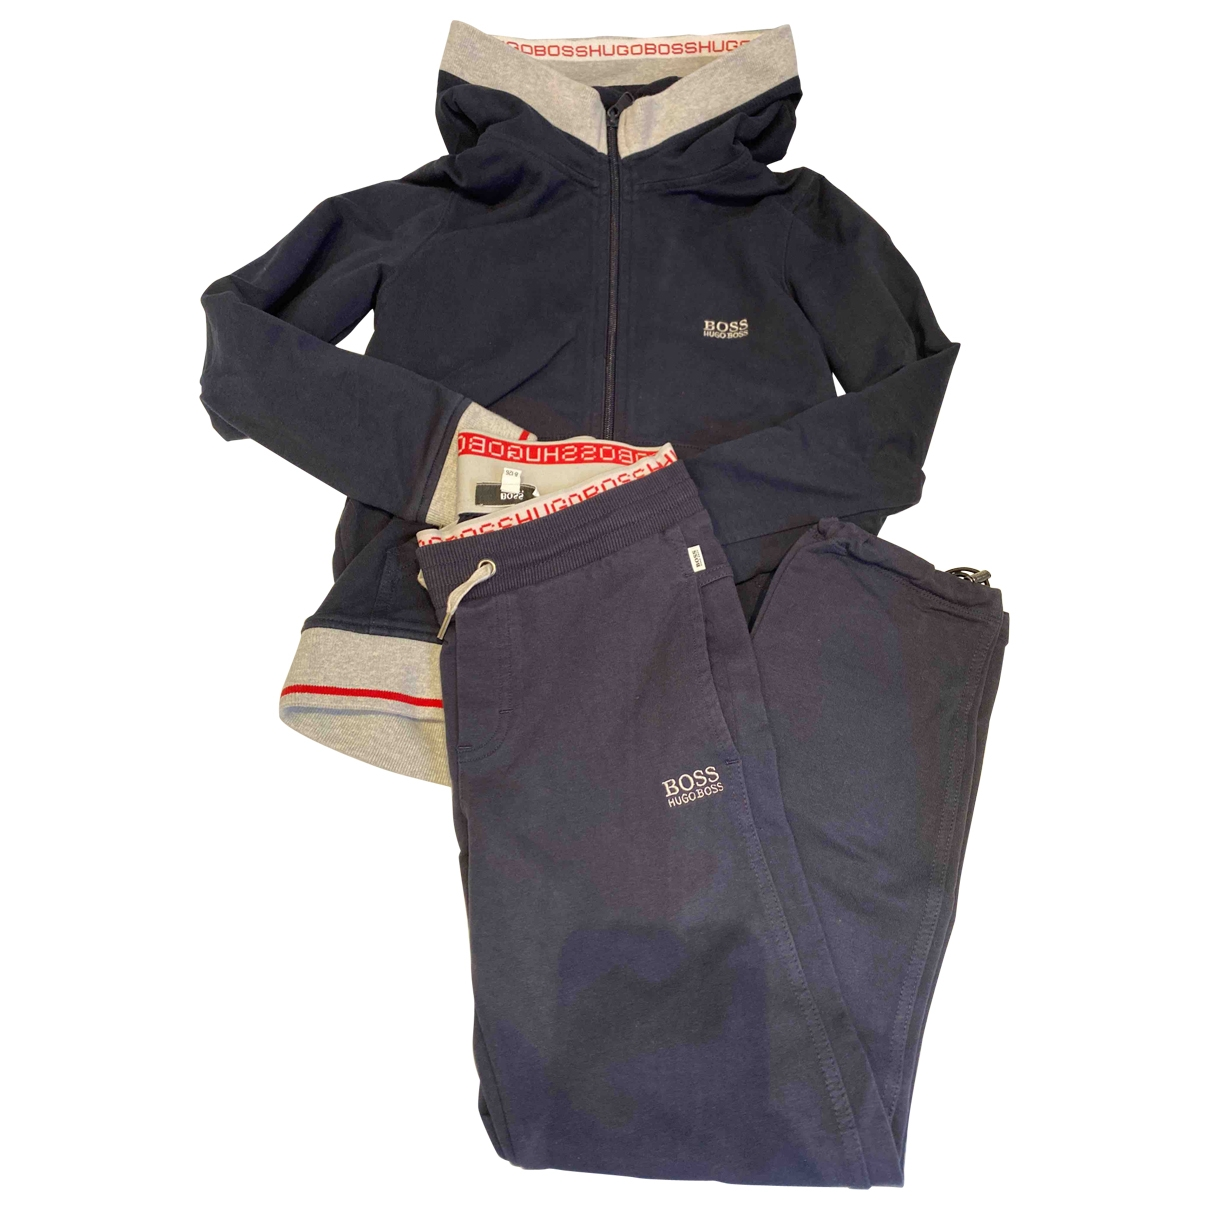 Hugo Boss \N Blue Cotton Outfits for Kids 8 years - up to 128cm FR